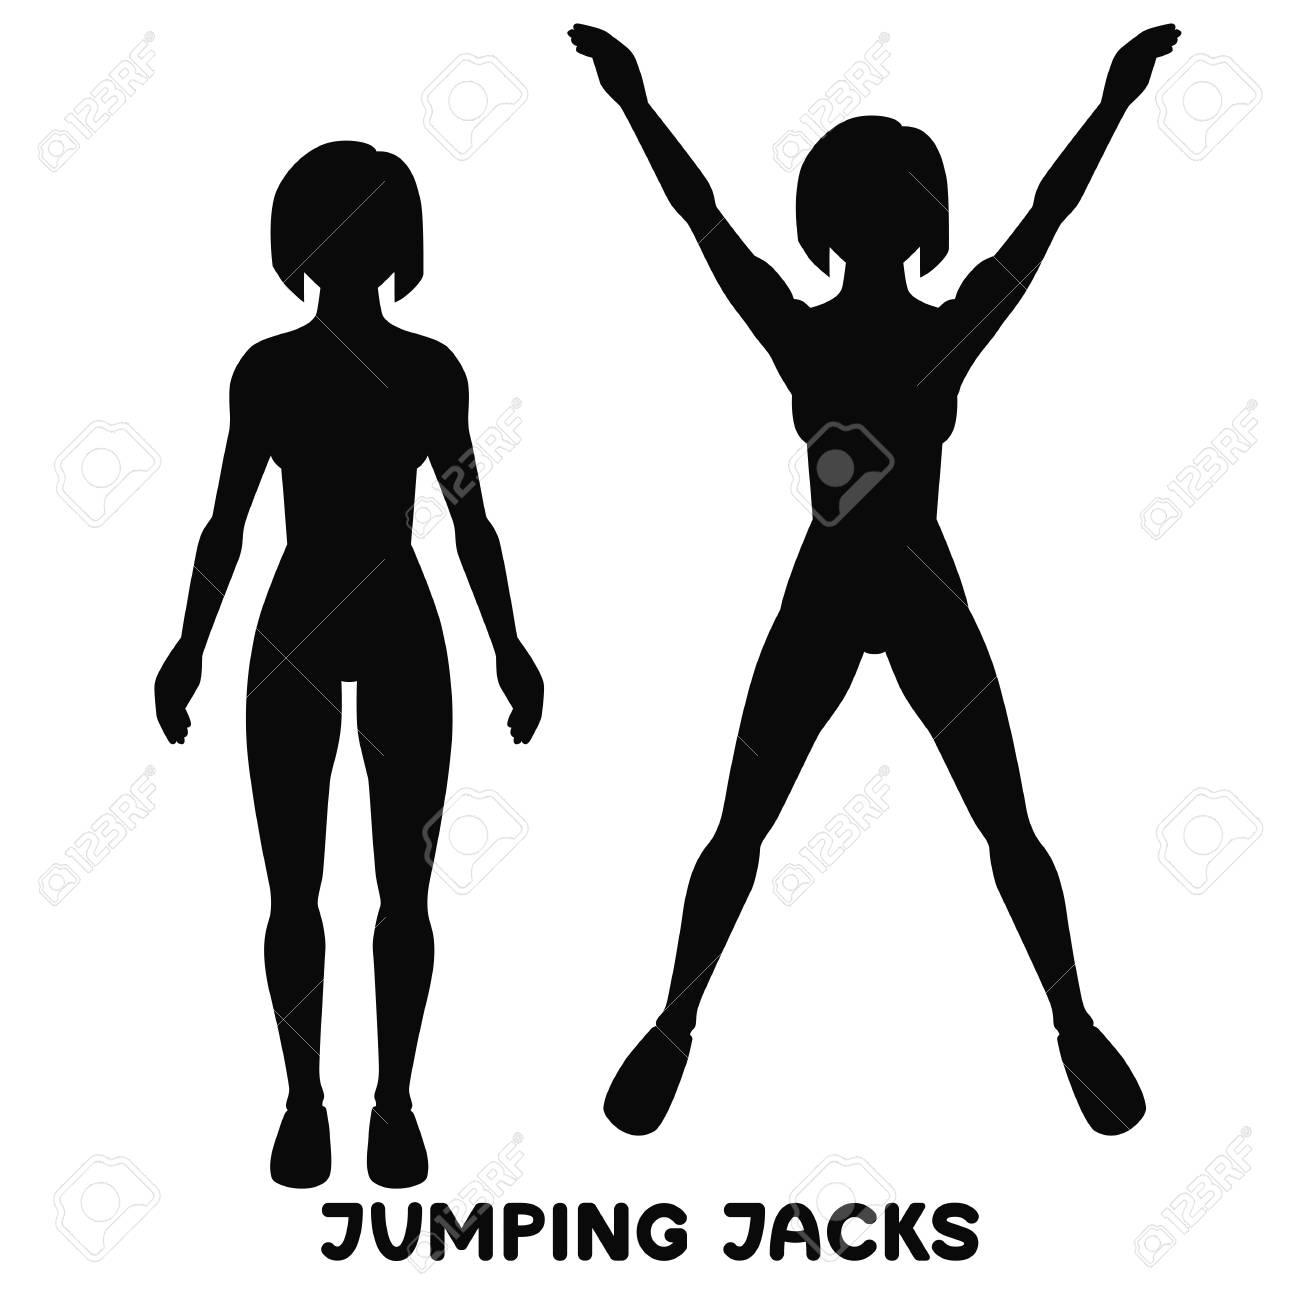 Jumping Jack. Sport exersice. Silhouettes of woman doing exercise.